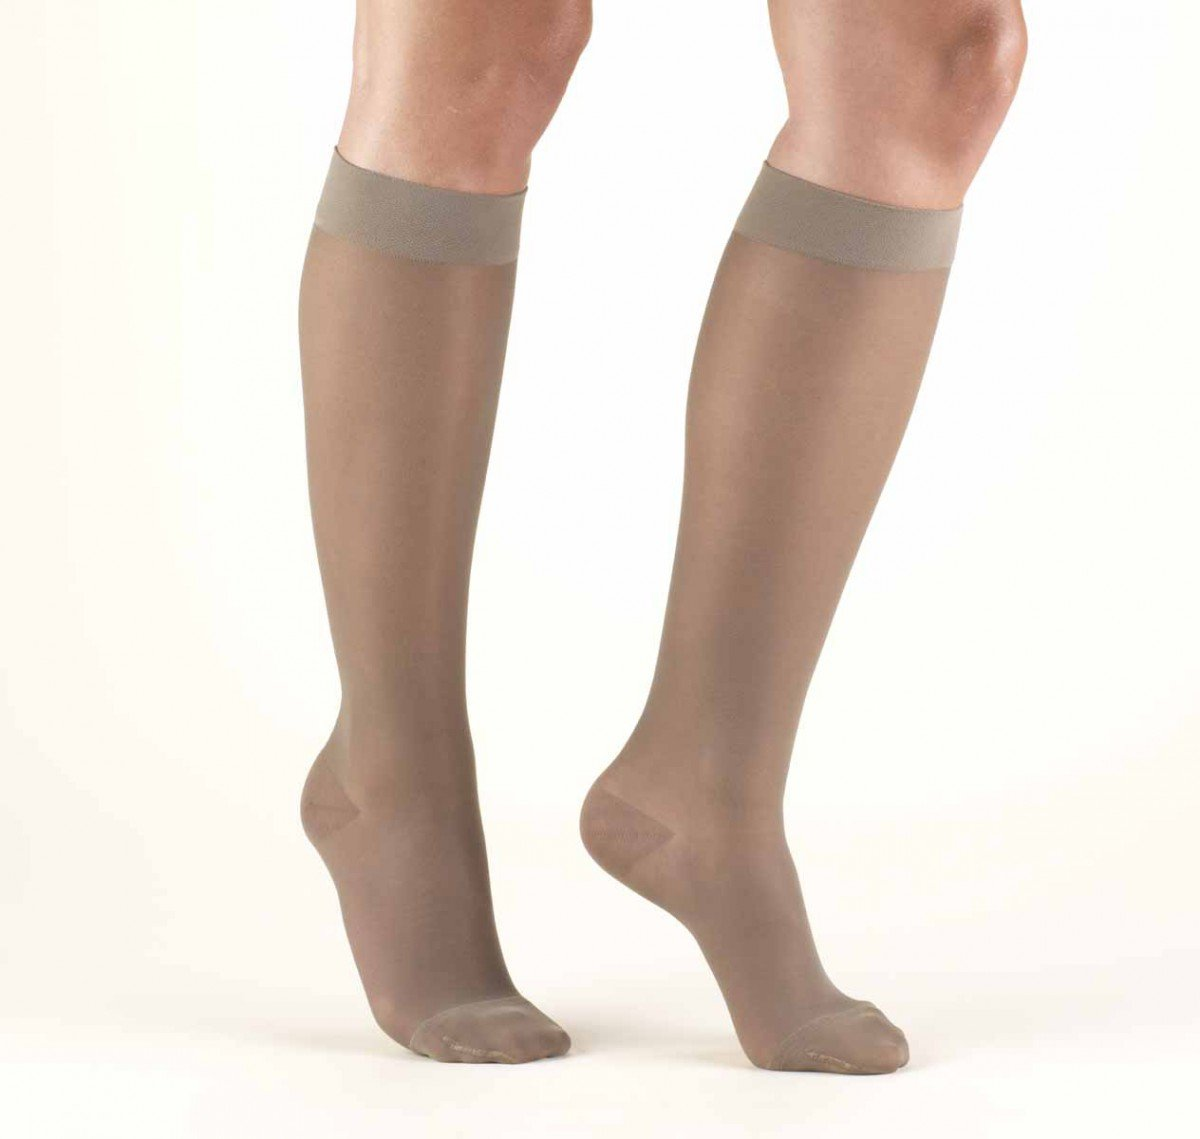 how to order compression stockings